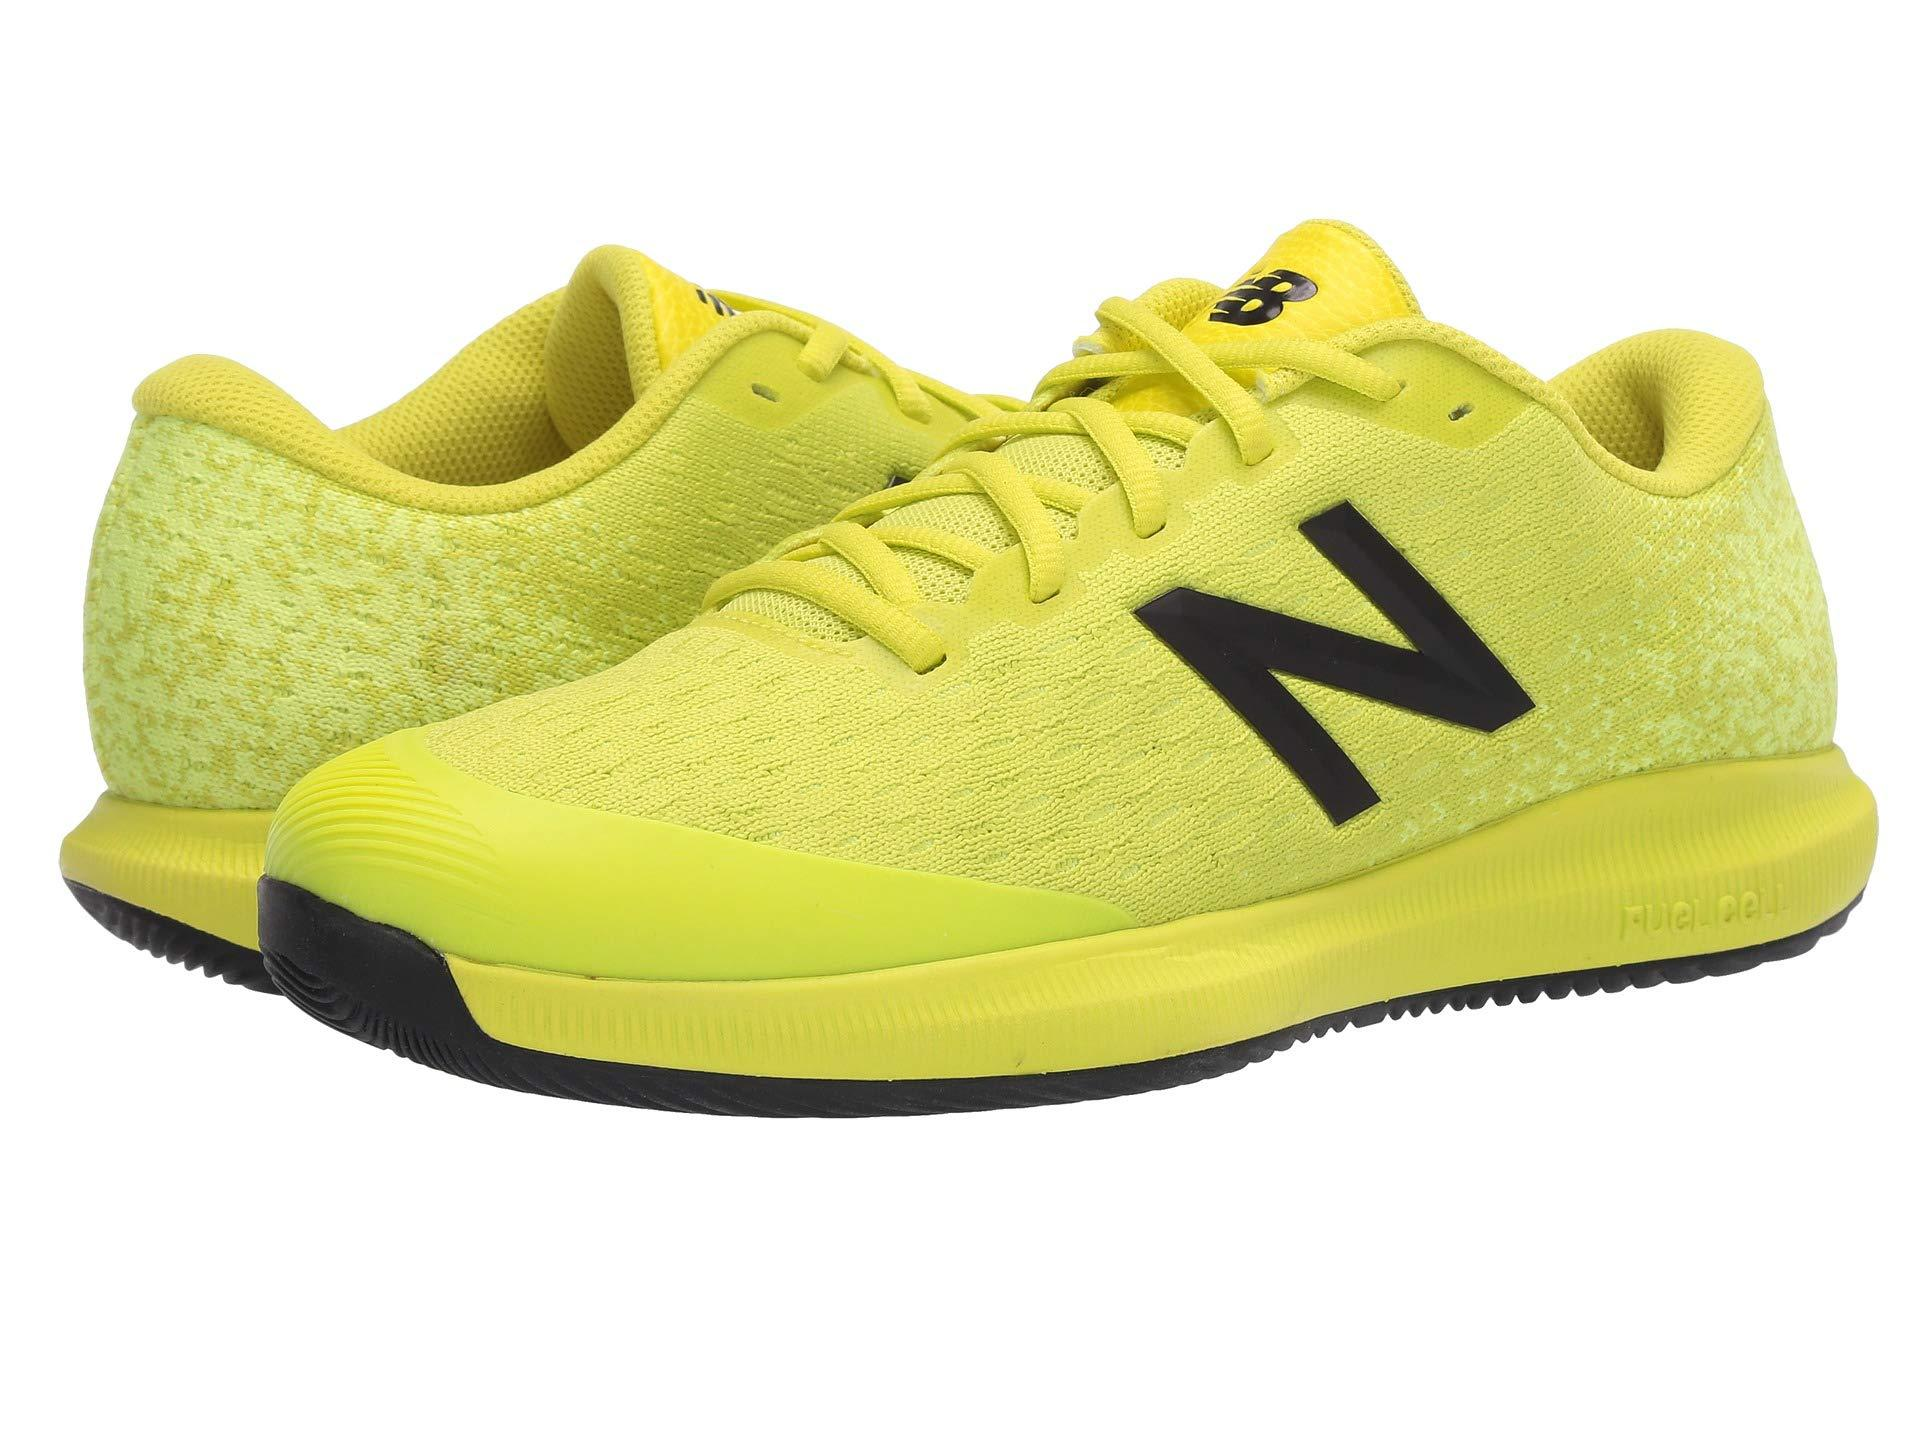 New Balance Synthetic Fuelcell 996v4 Low-top sneakers in Yellow ...